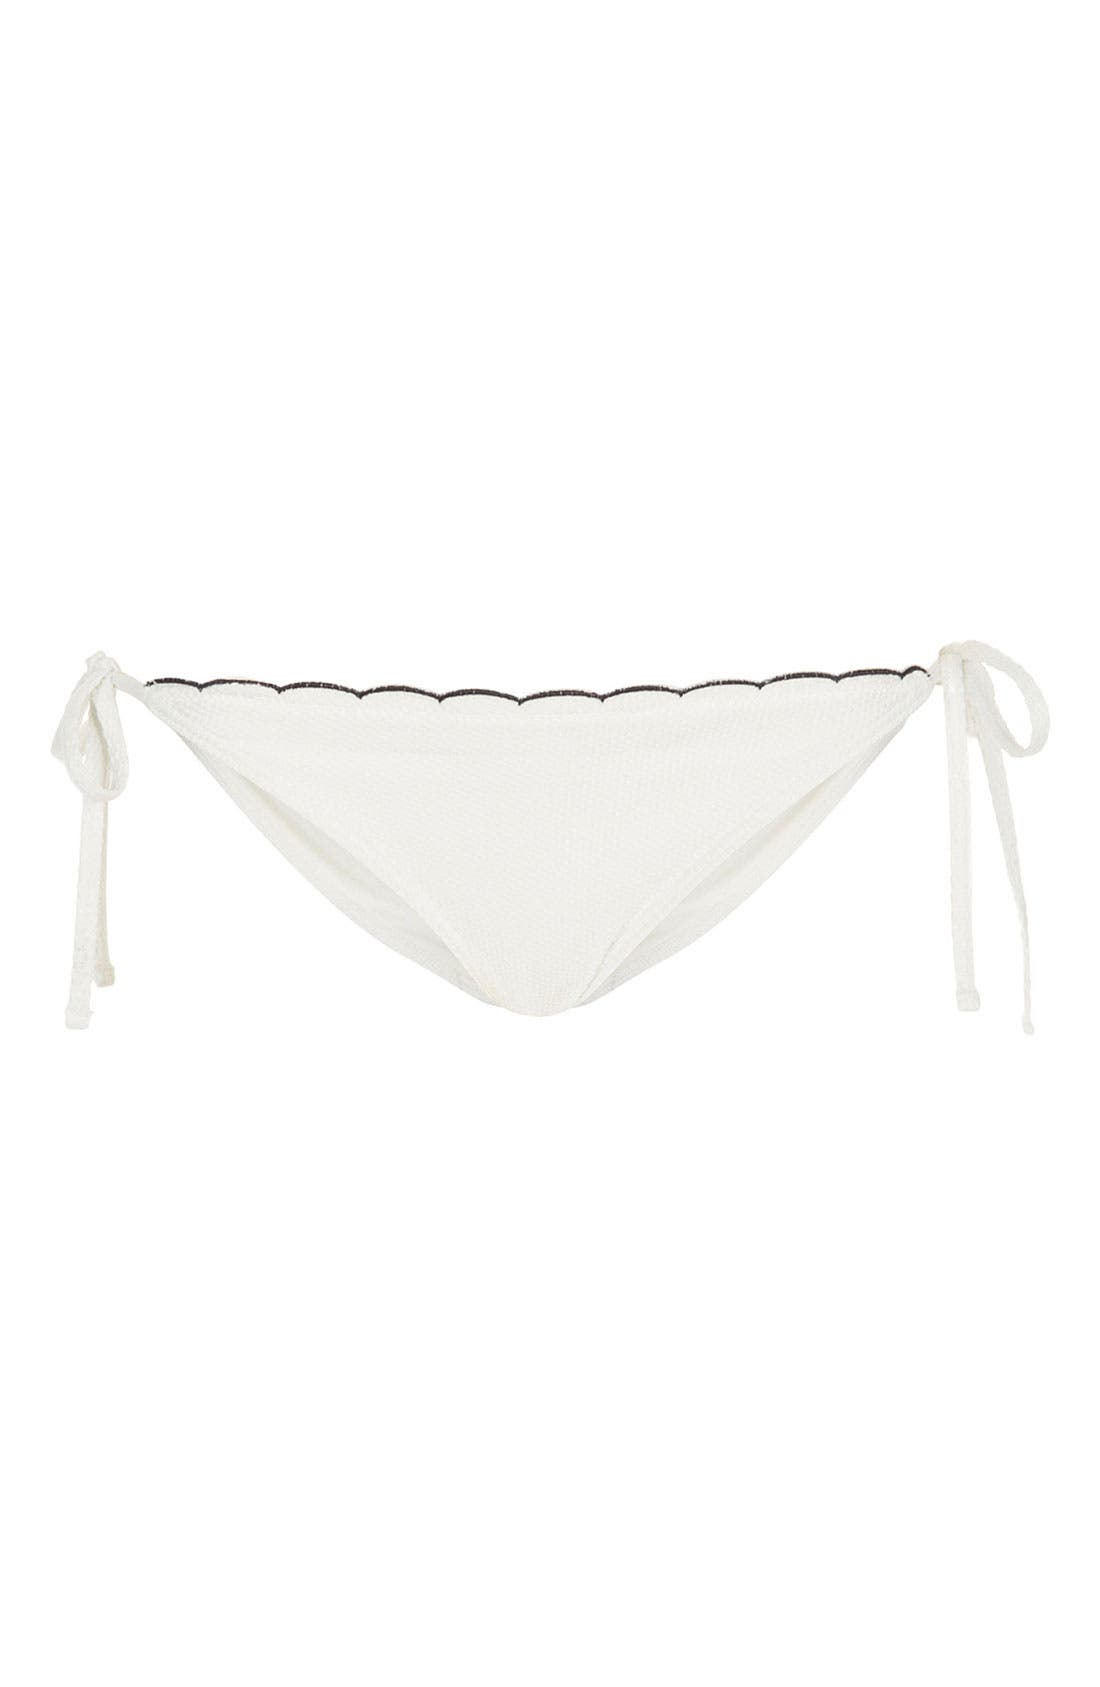 Alternate Image 1 Selected - Topshop Scallop Side Tie Bikini Bottoms